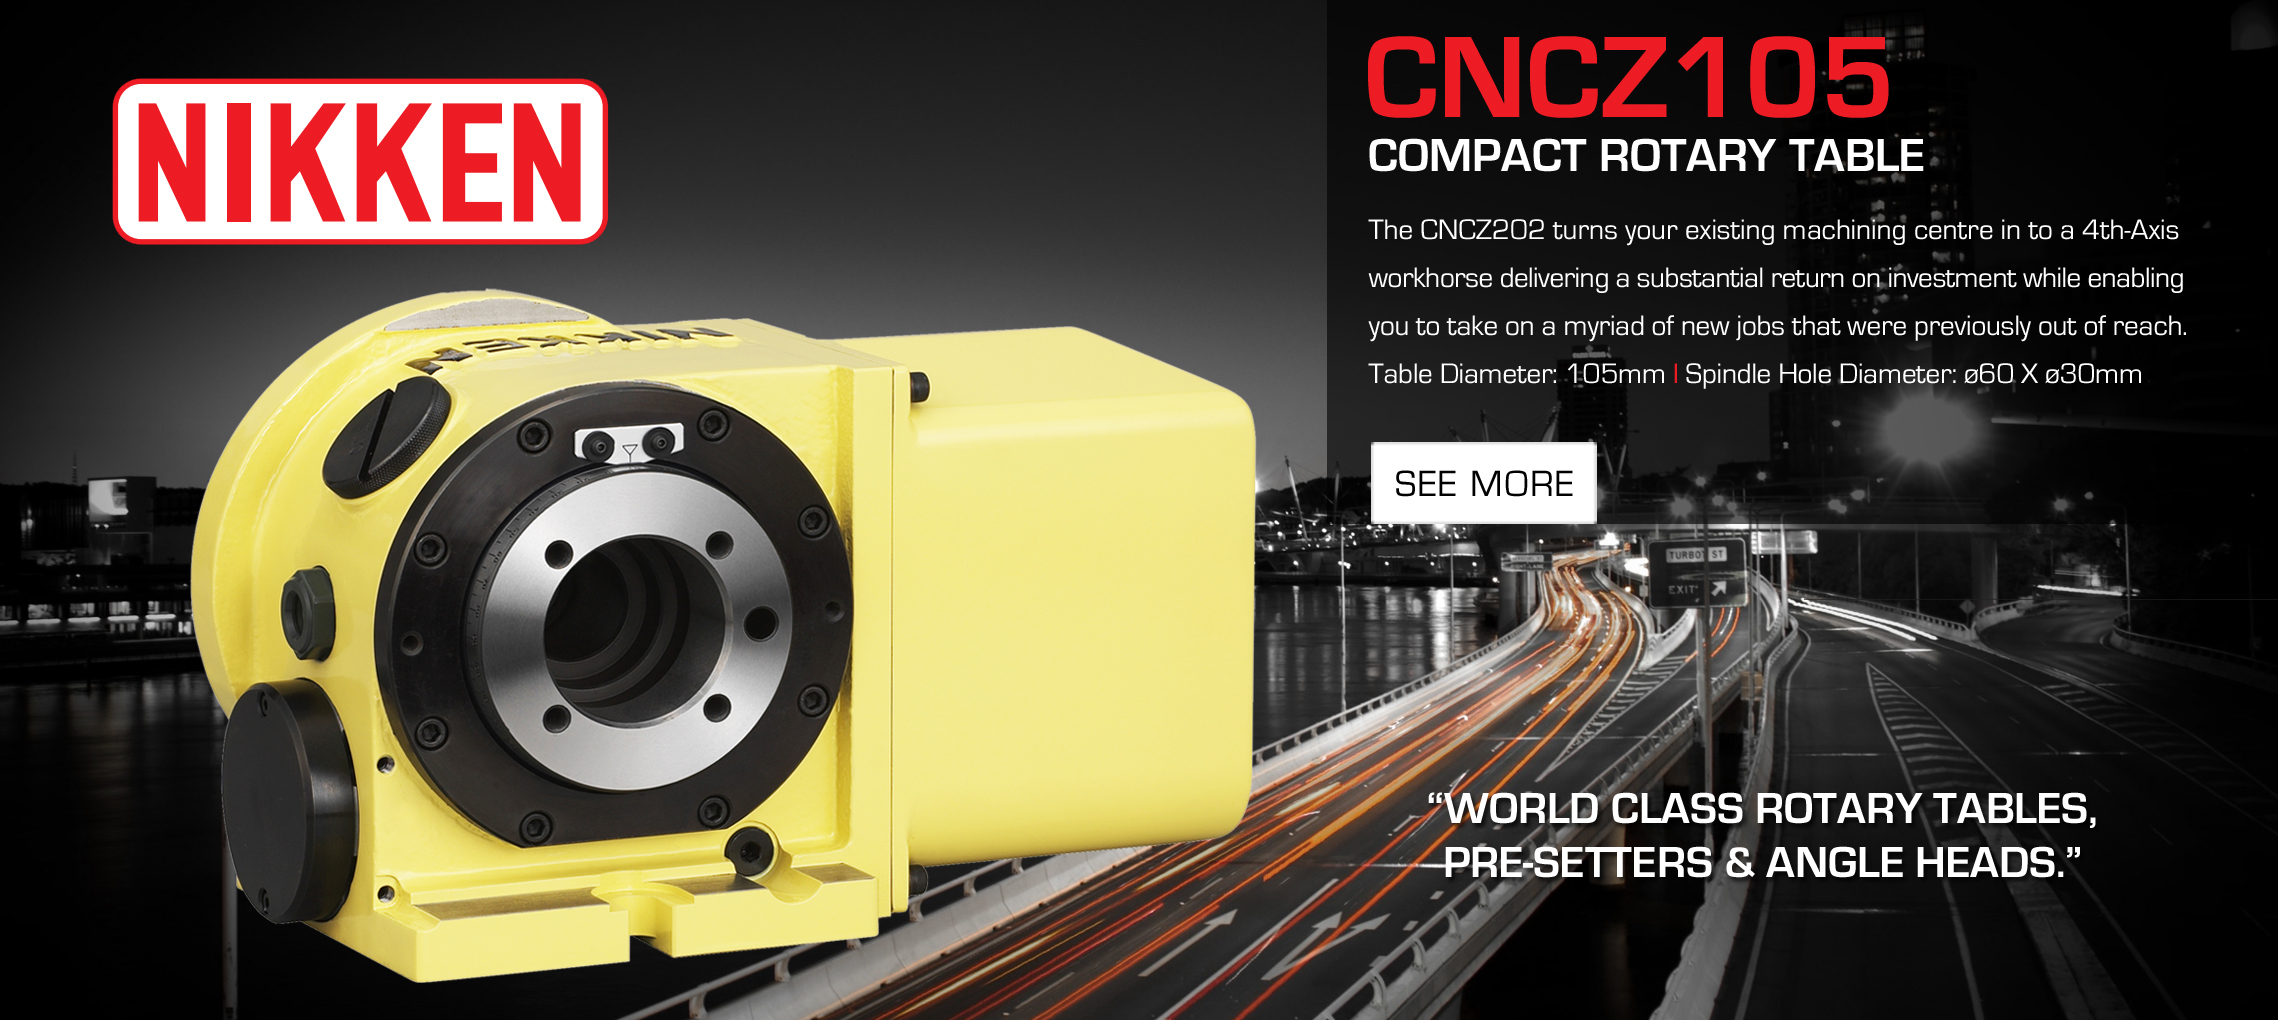 CNC105/CNCZ105 Compact Rotary Table